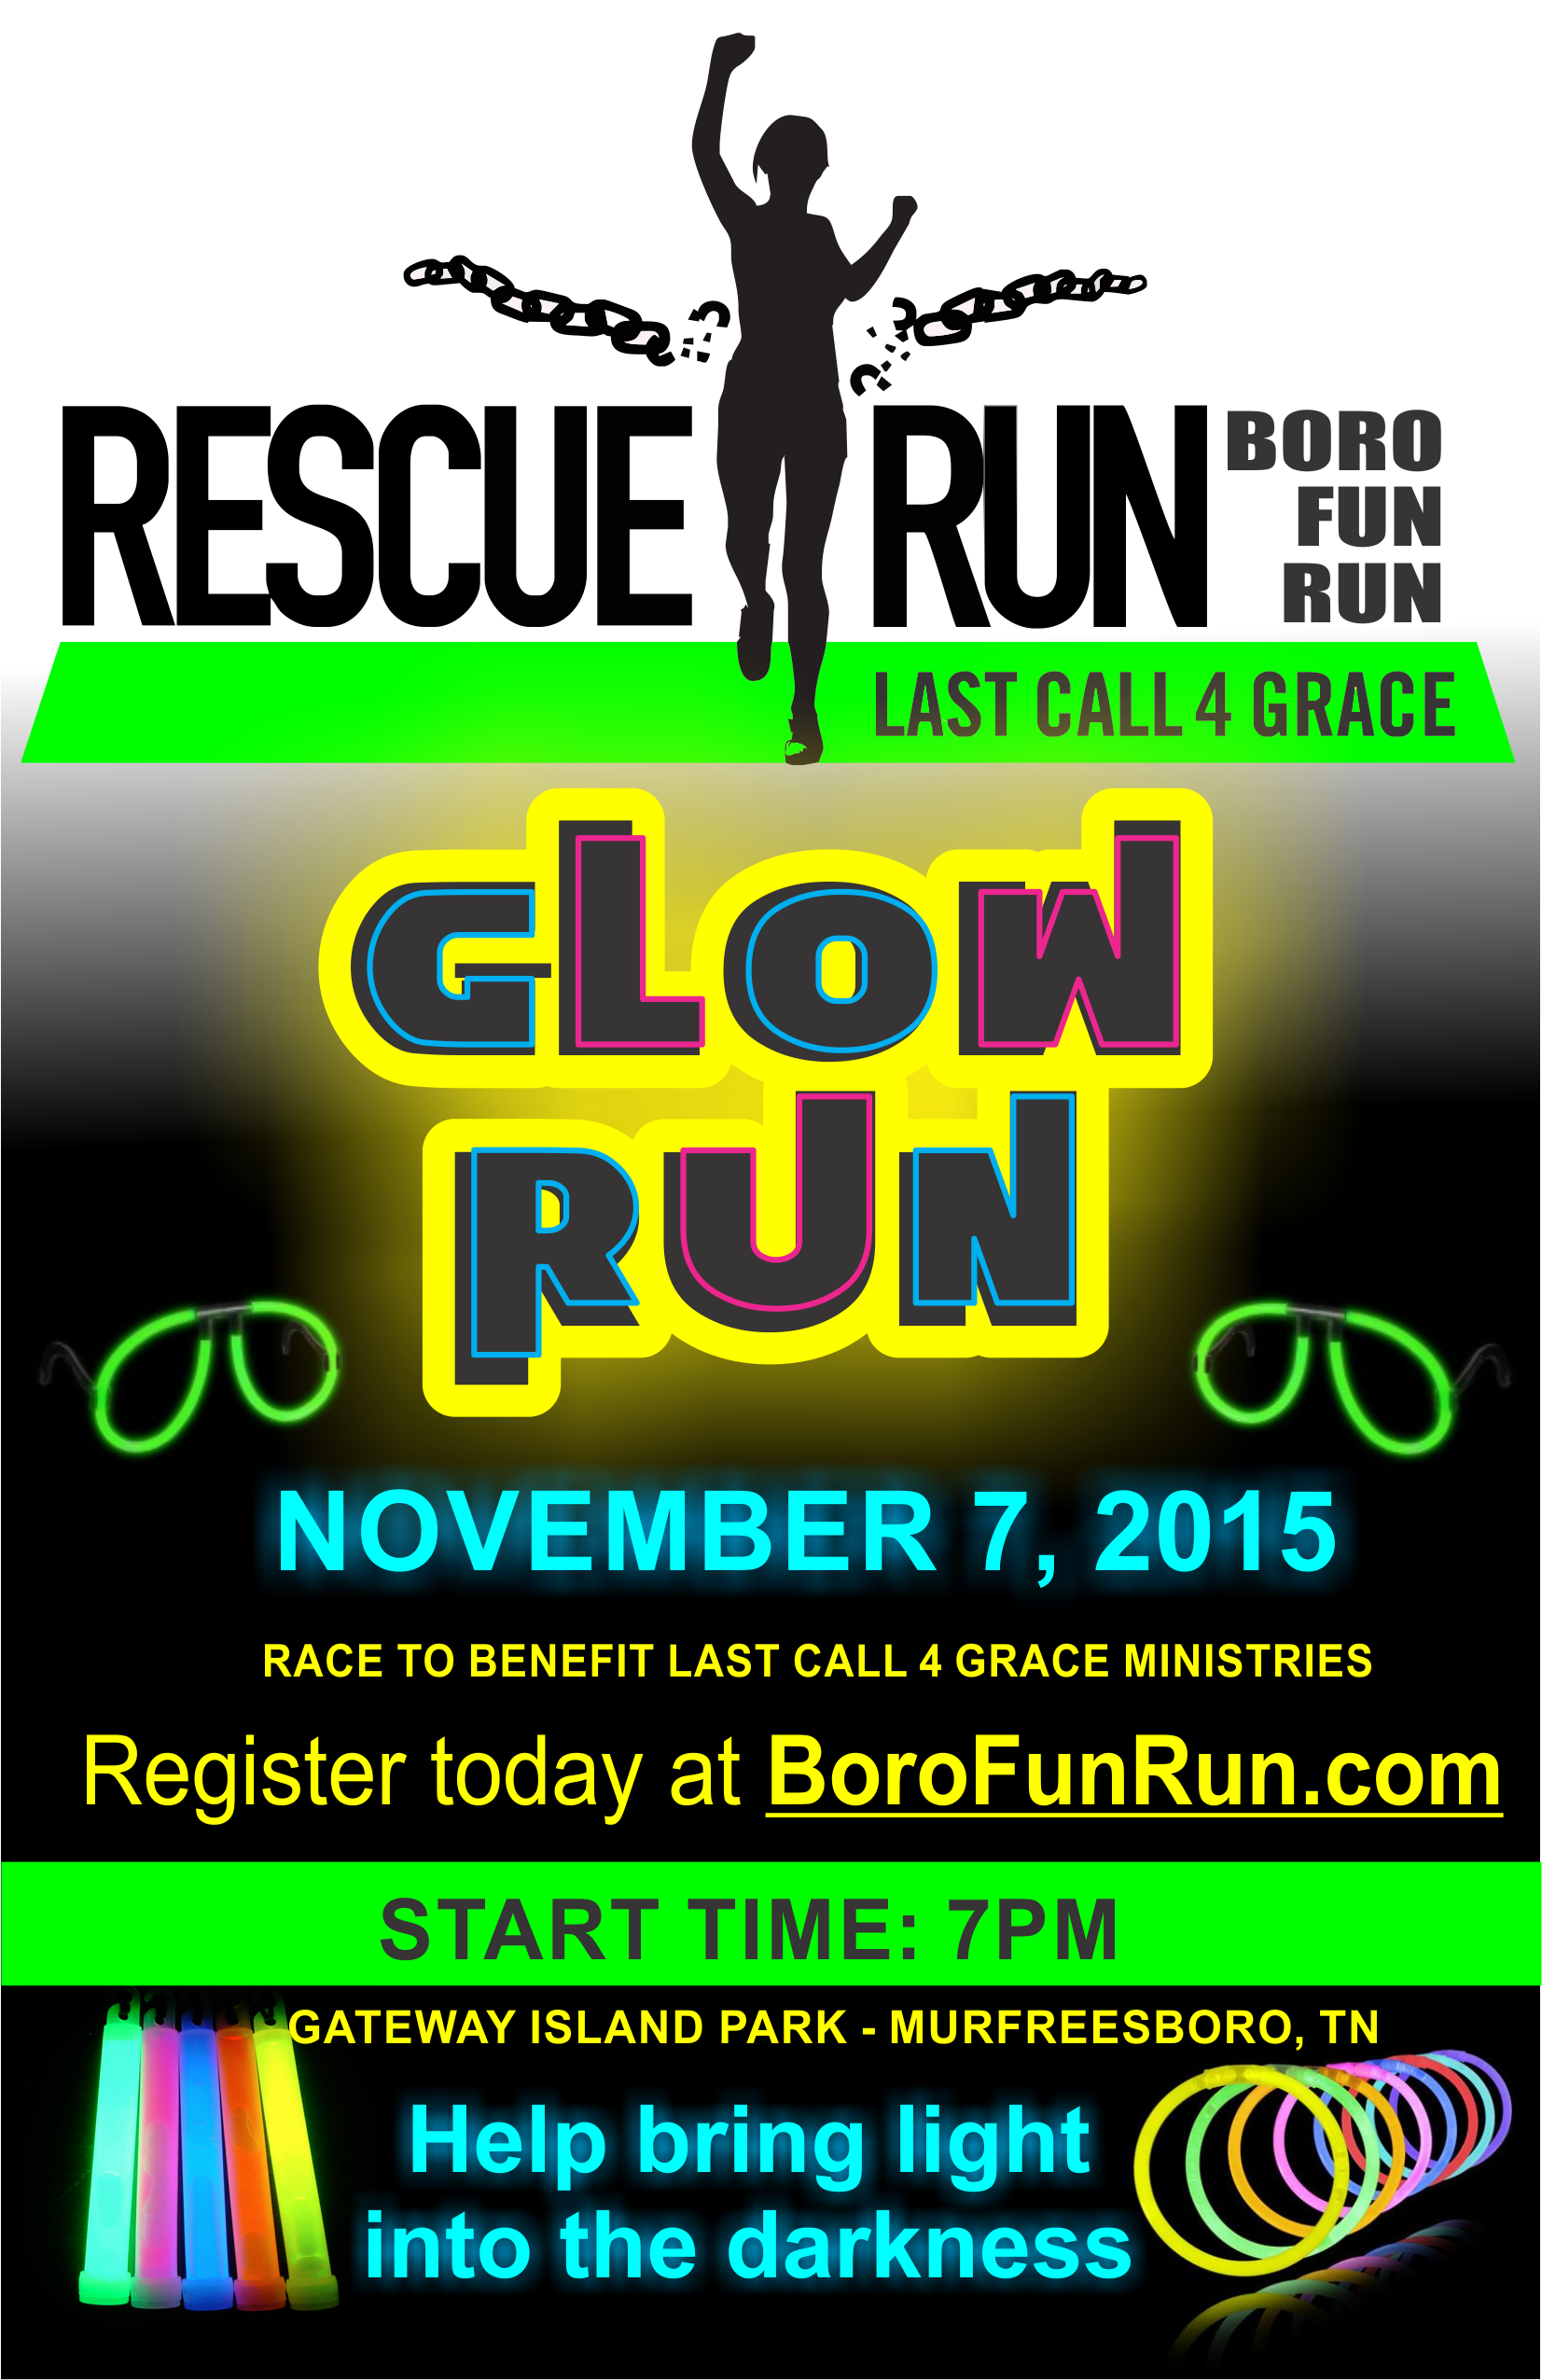 RESCUE RUN / GLOW RUN is THIS Saturday Night: Sign up on Race Day in Murfreesboro